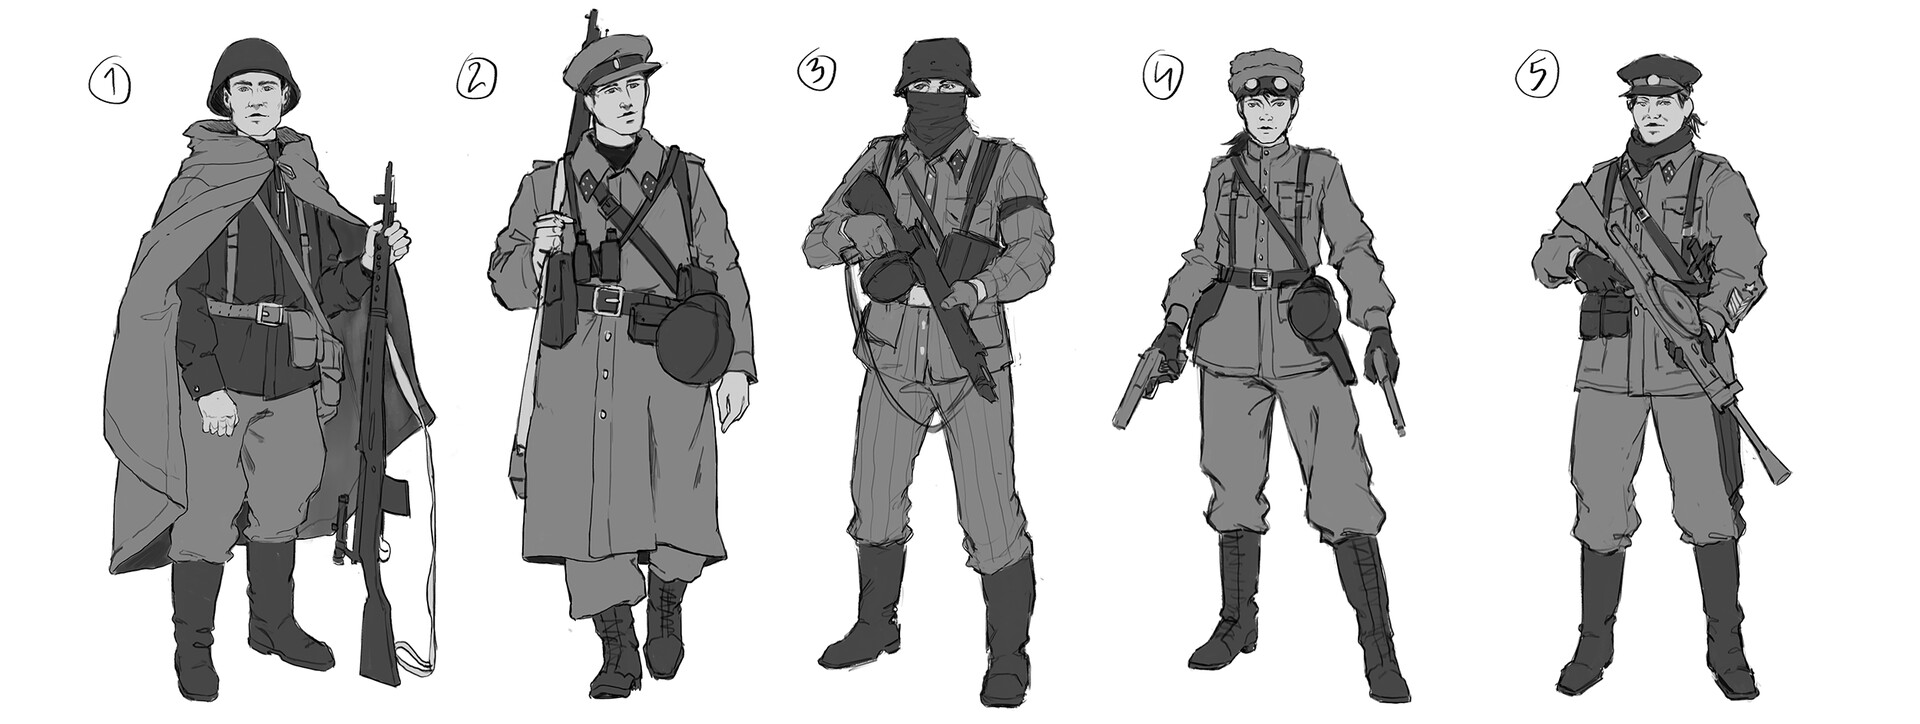 Sketches for the Soviet soldiers.